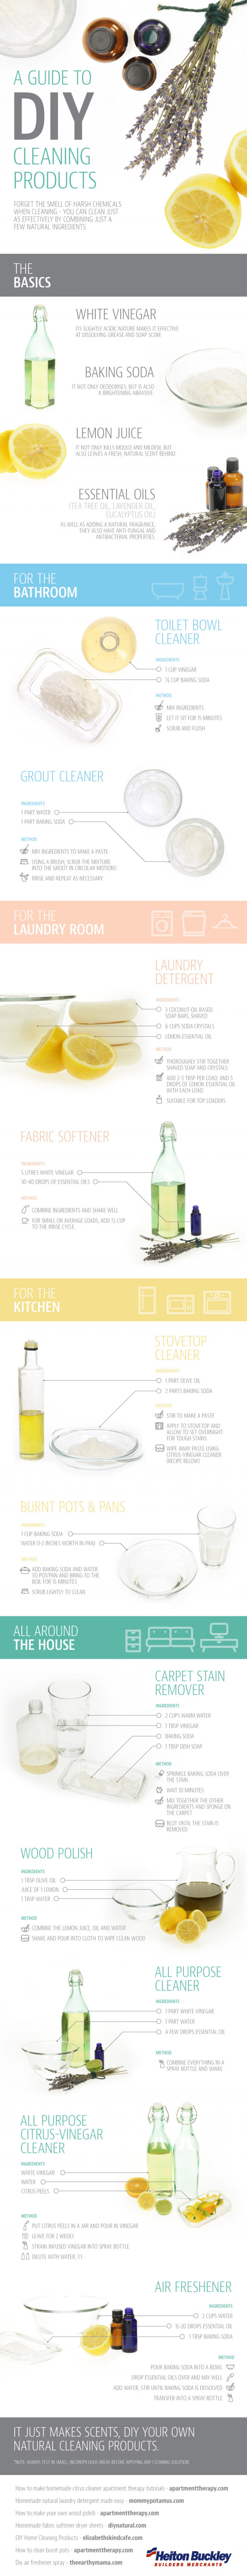 A Guide to DIY Cleanning Products